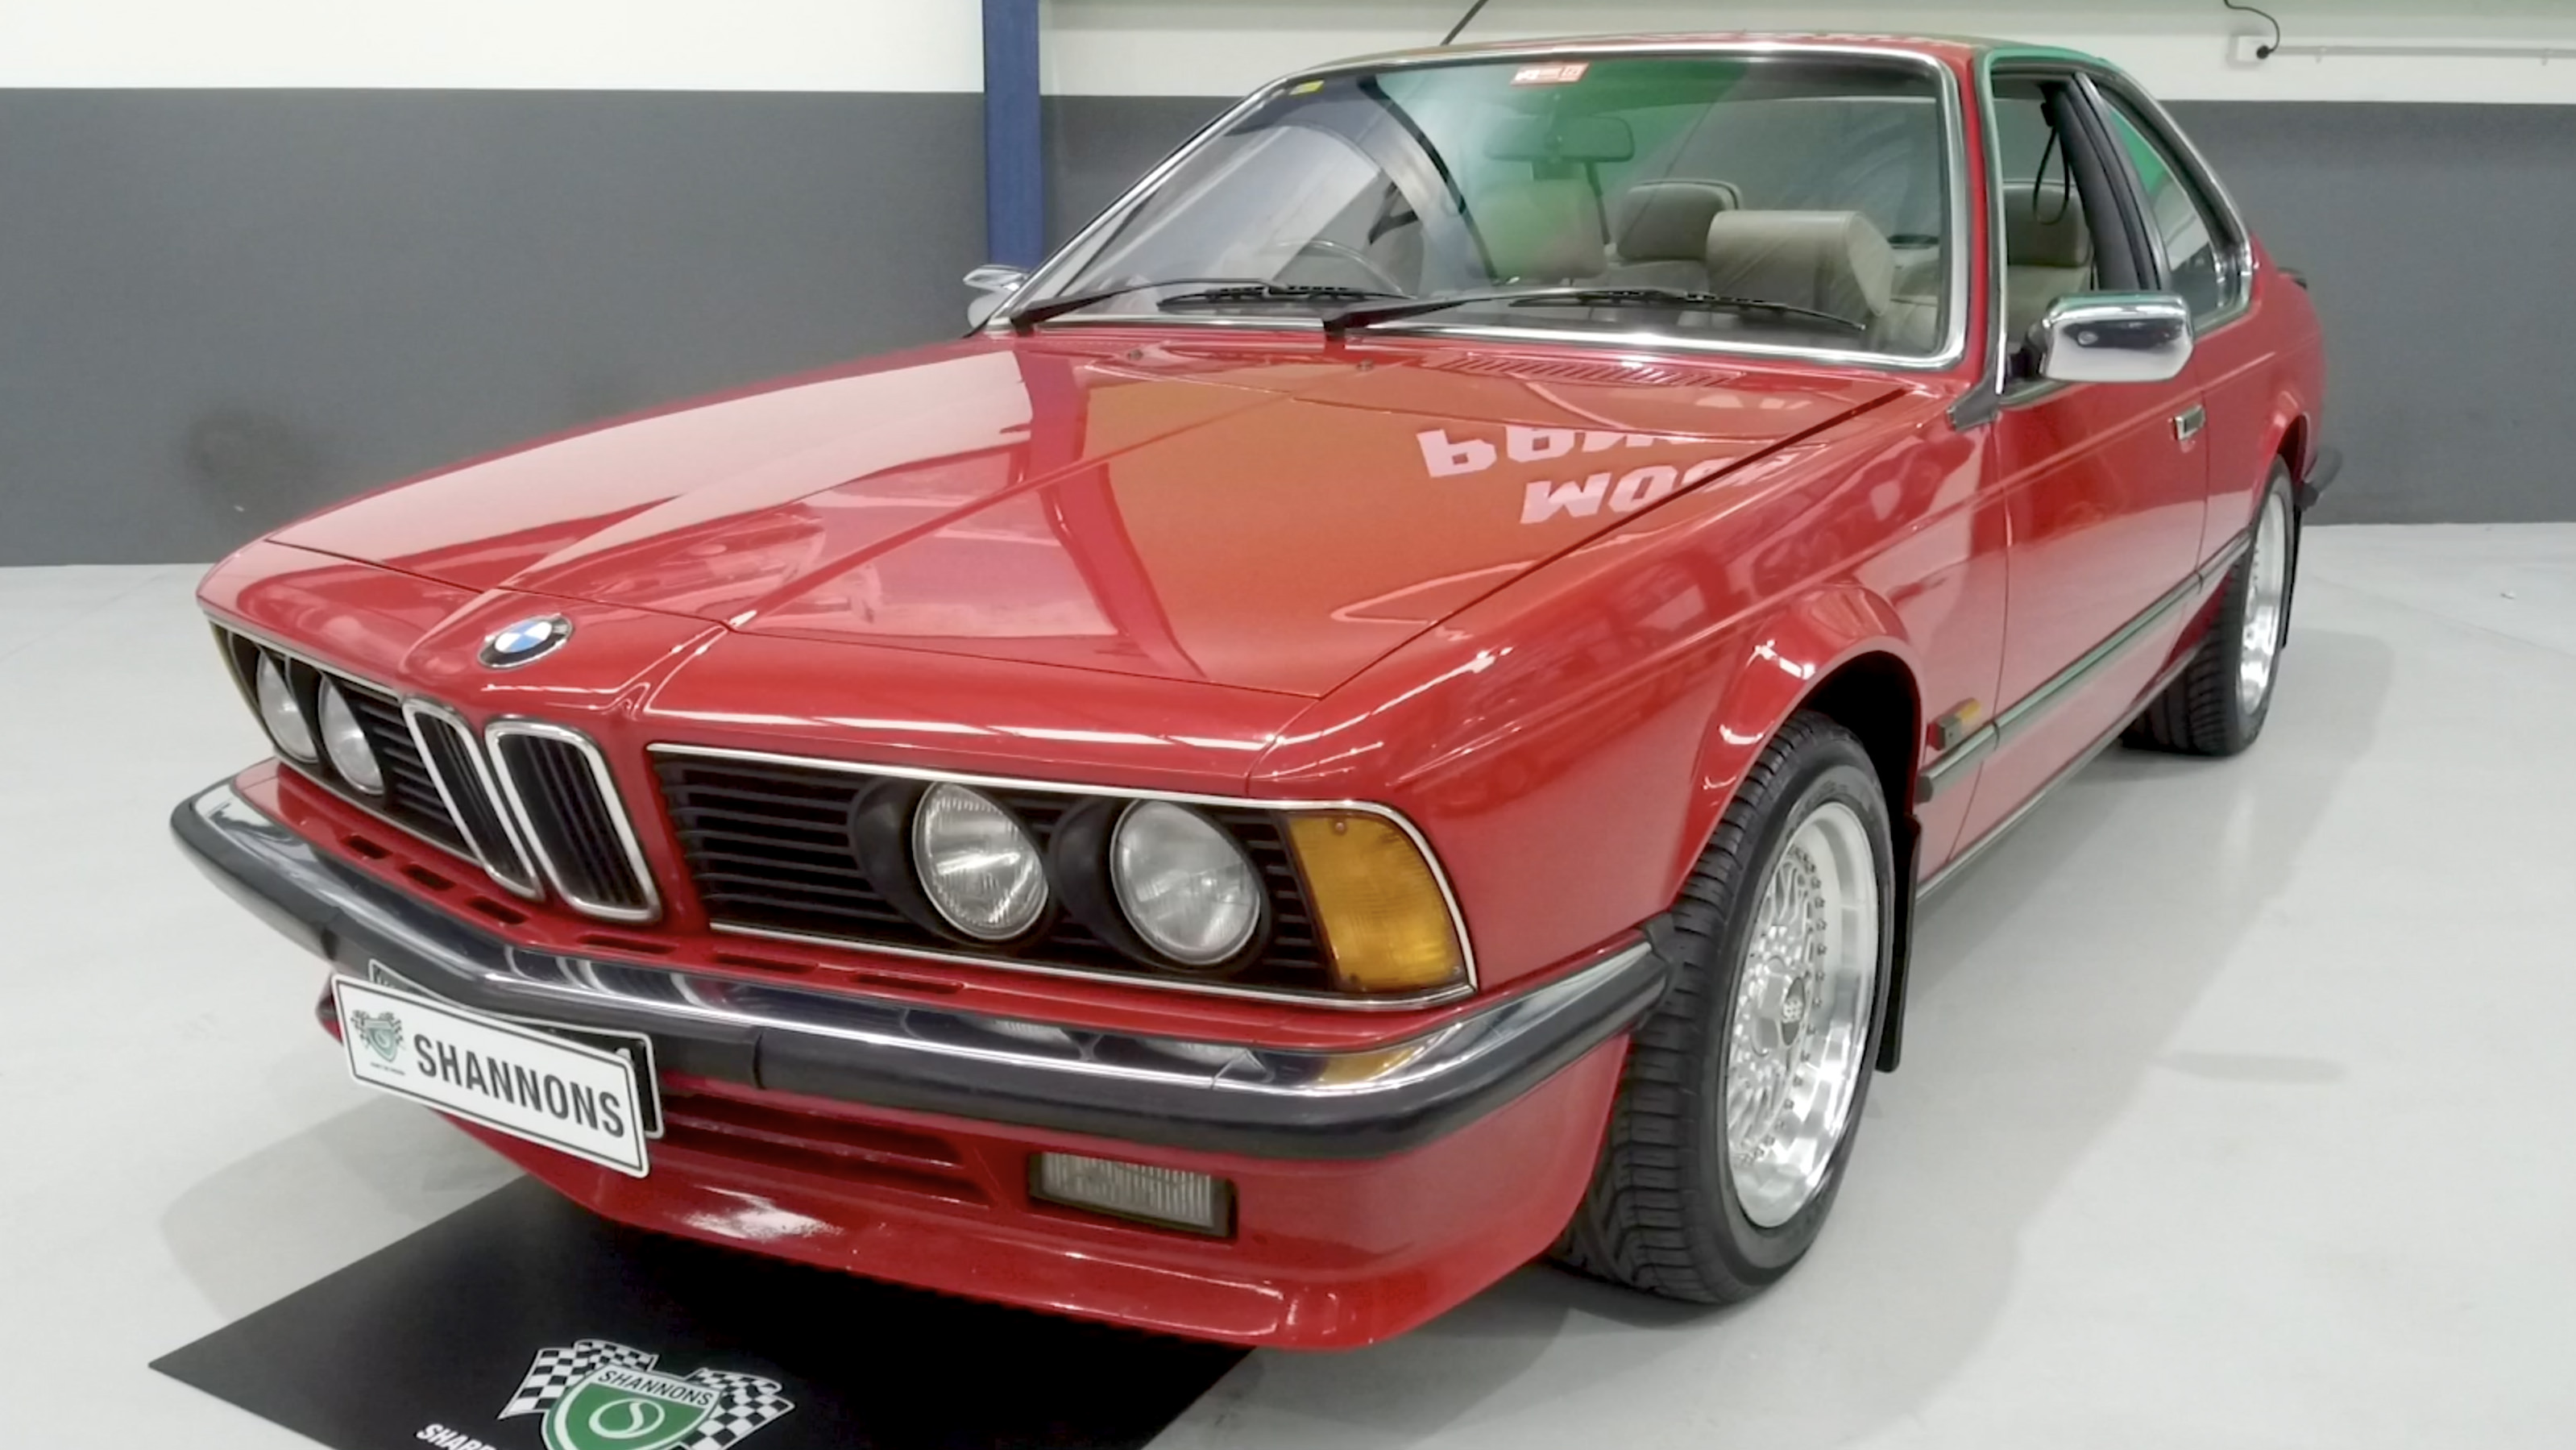 1987 BMW 635CSi E24 Coupe - 2020 Shannons Spring Timed Online Auction